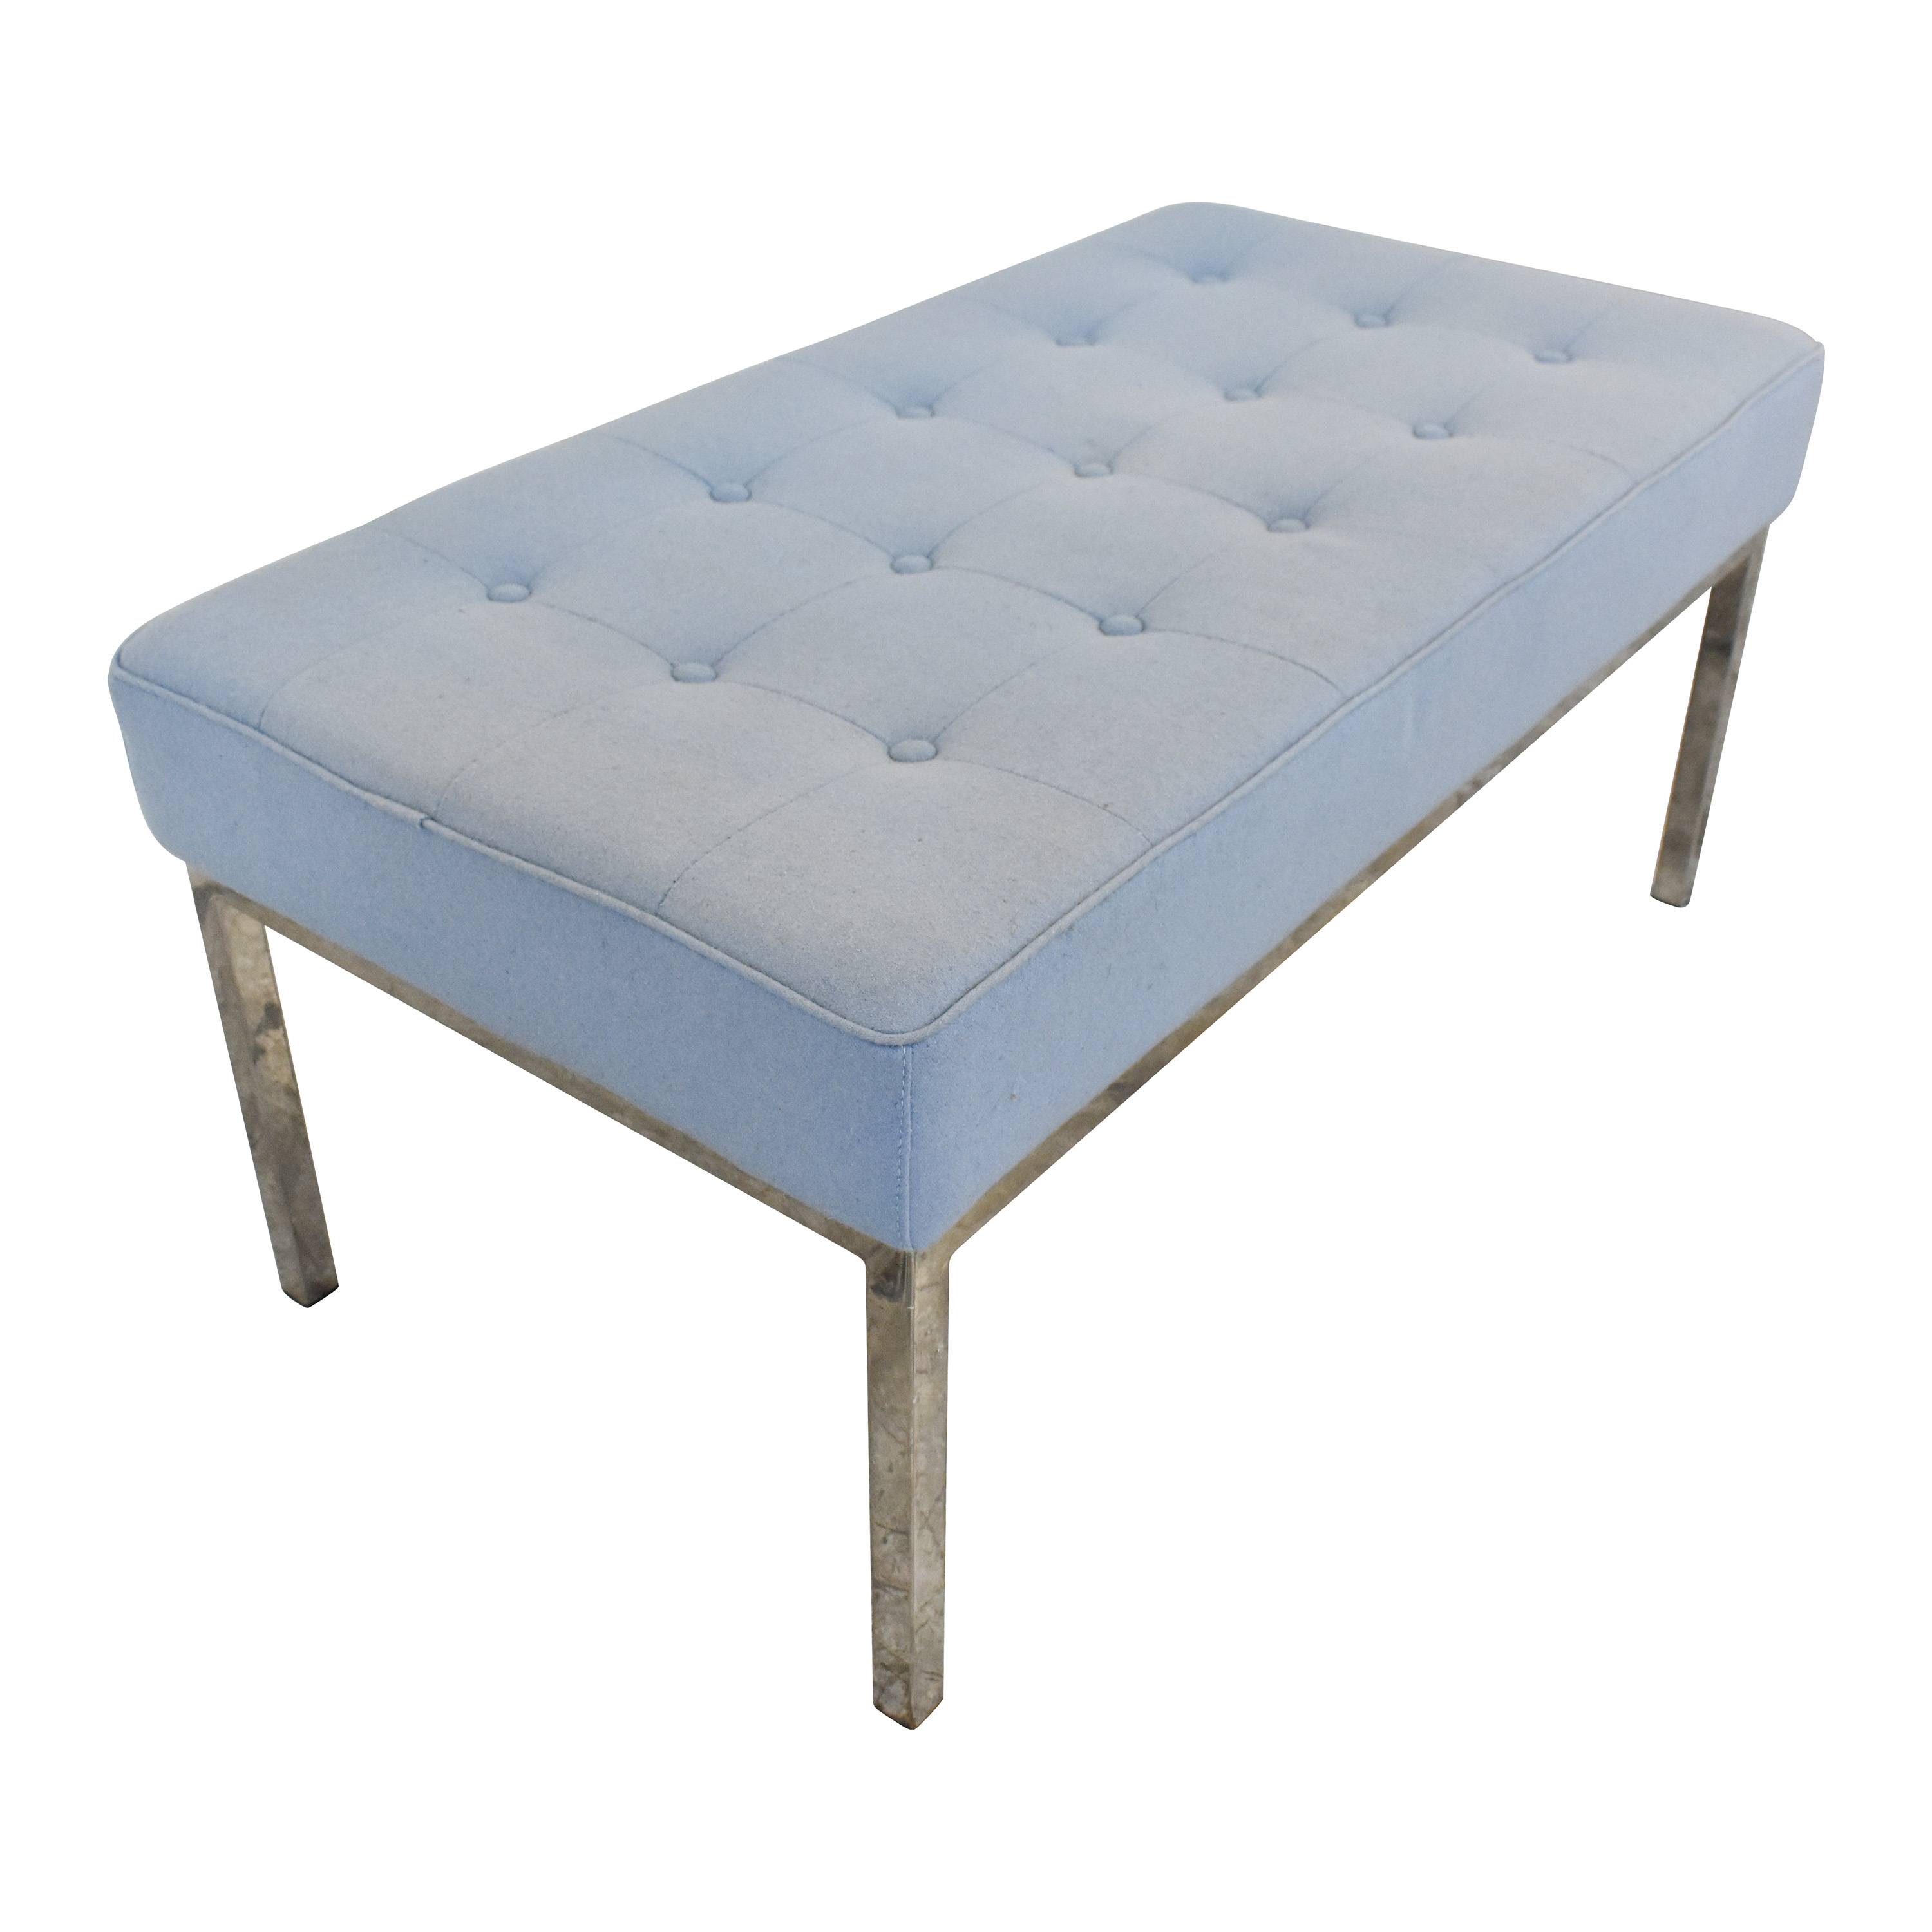 Rove Concepts Rove Concepts Mid Century Tufted Bench pa